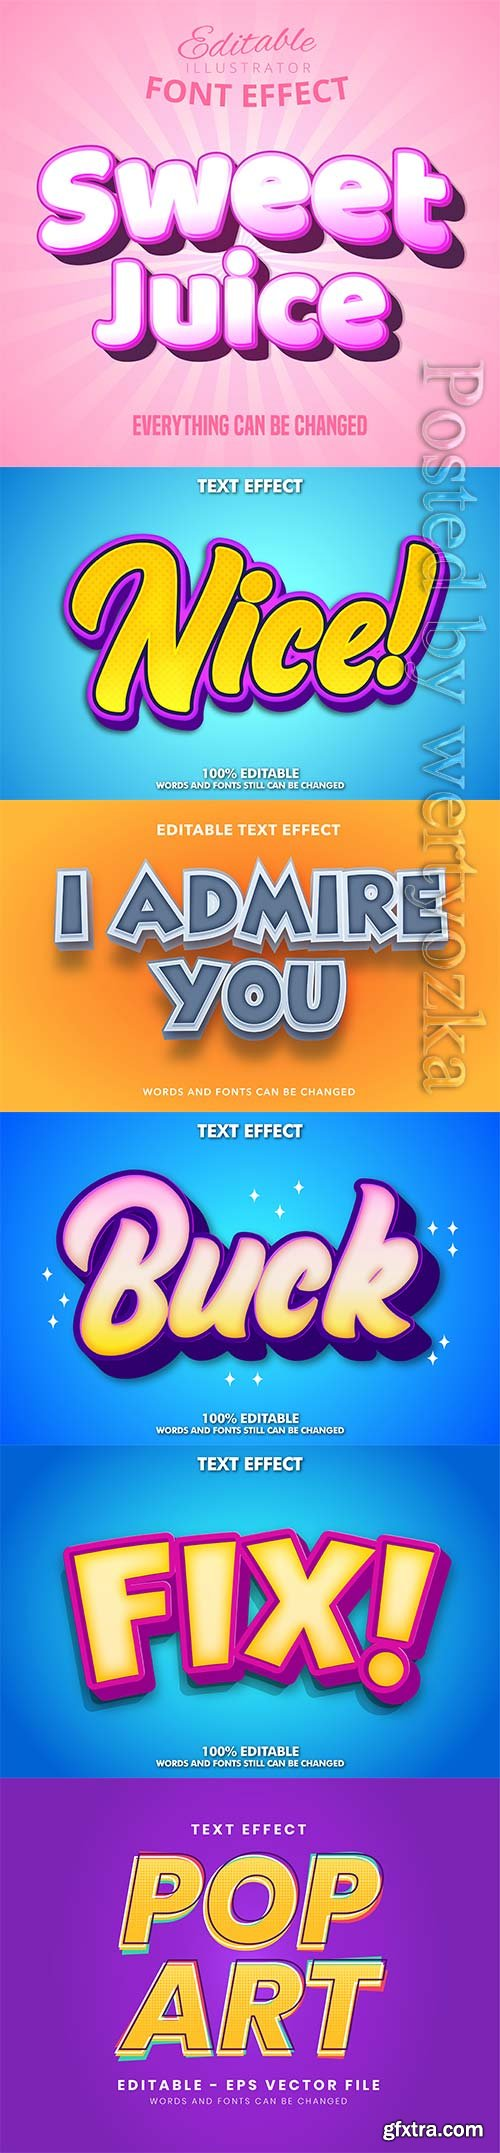 3d editable text style effect vector vol 296